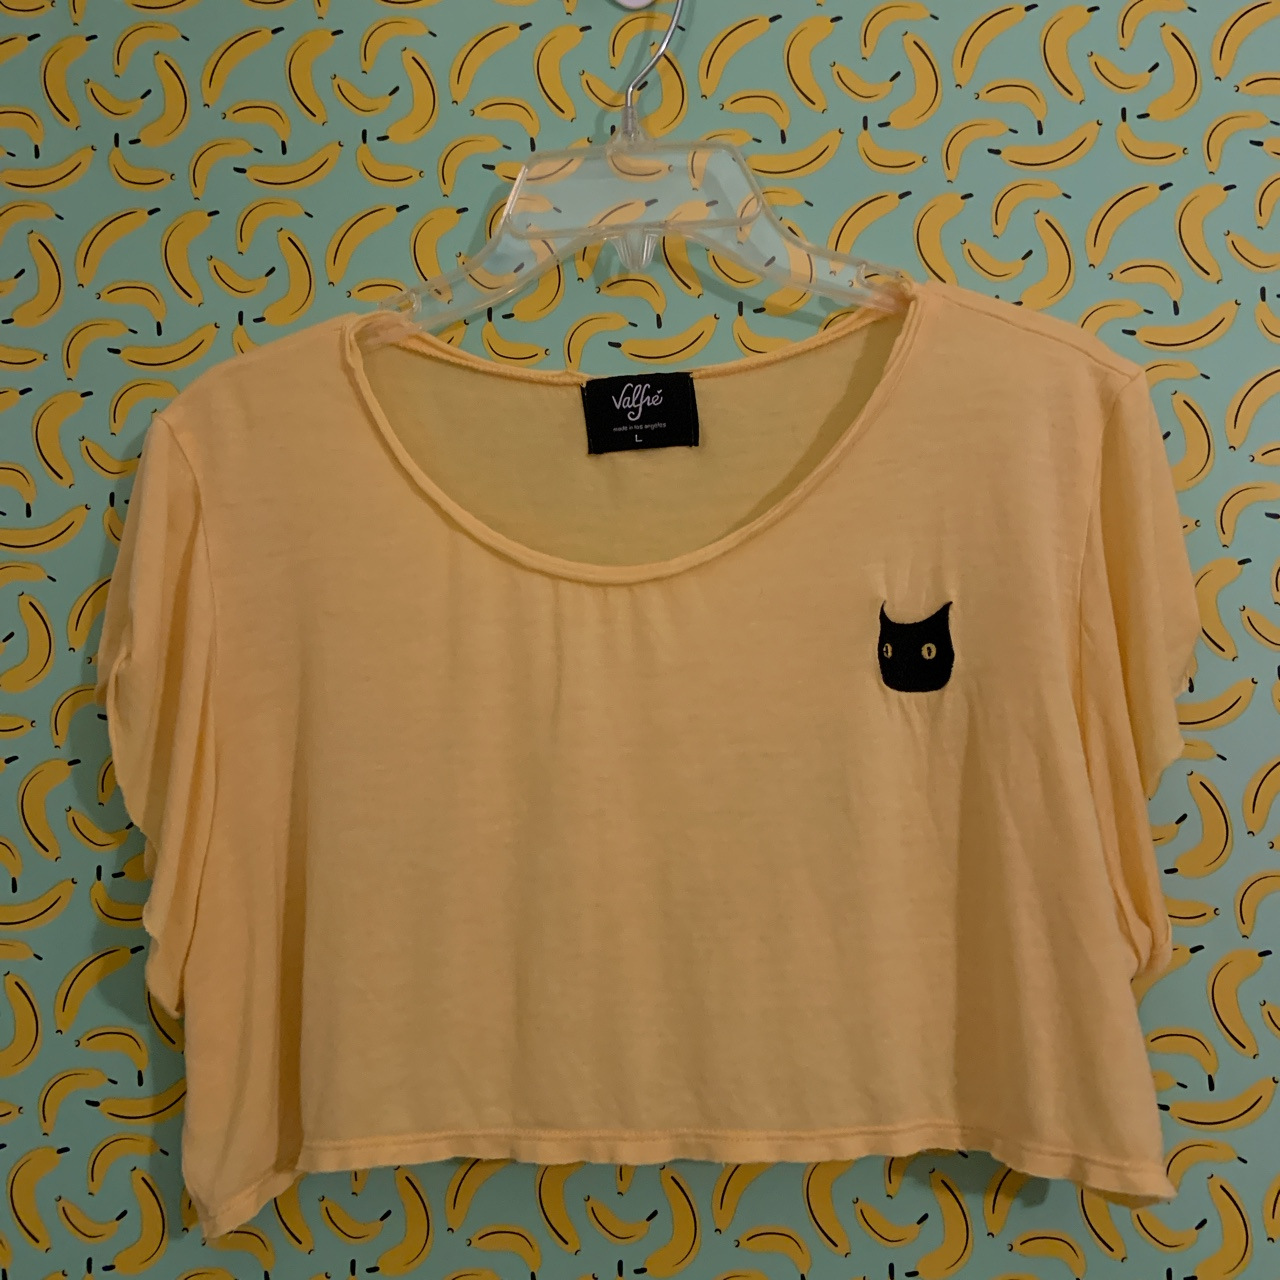 Product Image 1 - Valfré light yellow embroidered Bruno